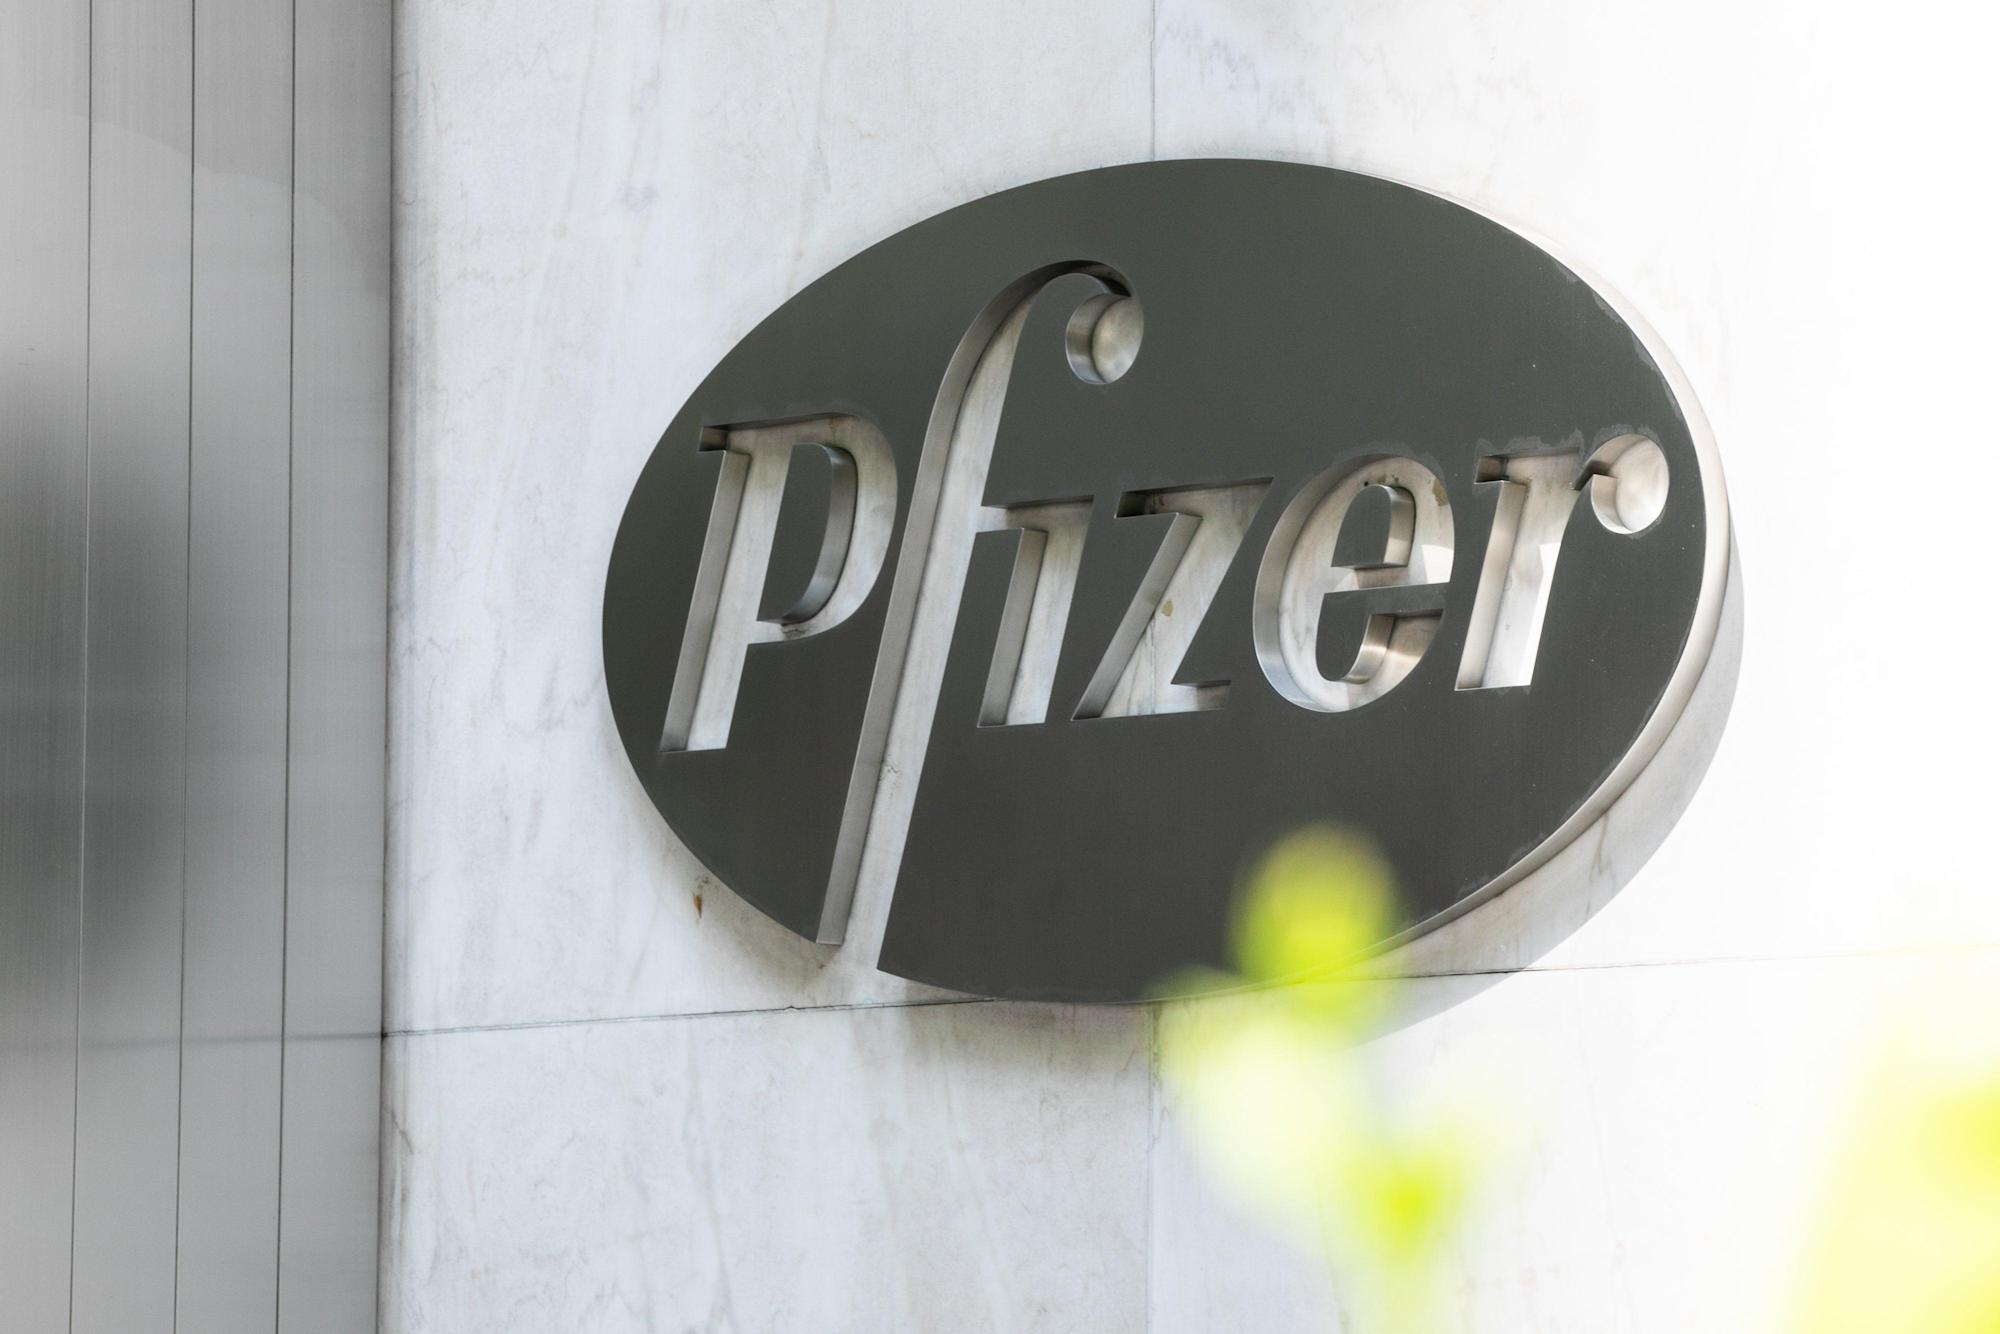 A Pfizer vaccine is great news, but the small print shows it's not the silver bullet we would hope